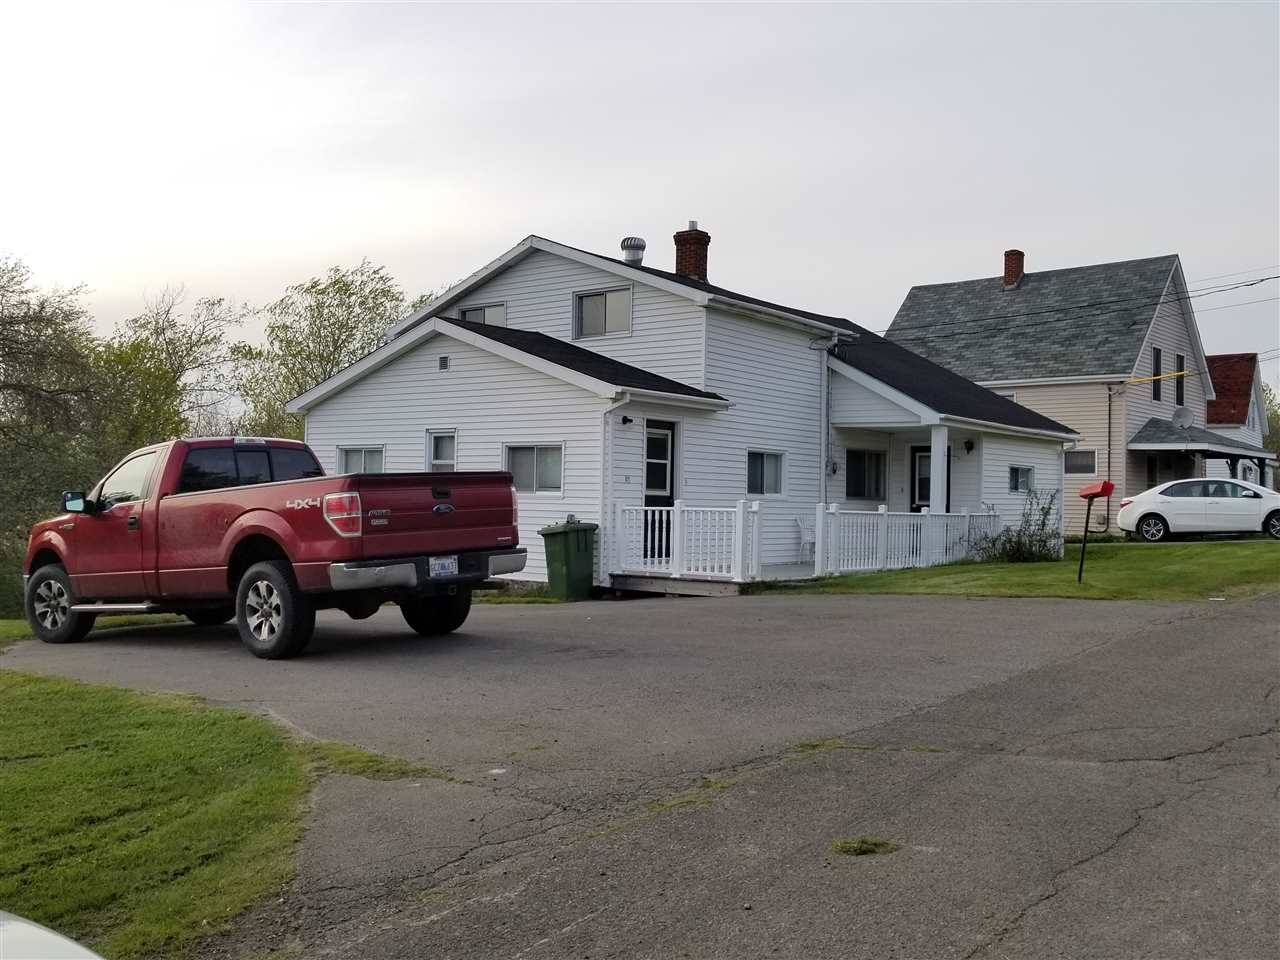 Main Photo: 45 First Street in Trenton: 107-Trenton,Westville,Pictou Residential for sale (Northern Region)  : MLS®# 201812417